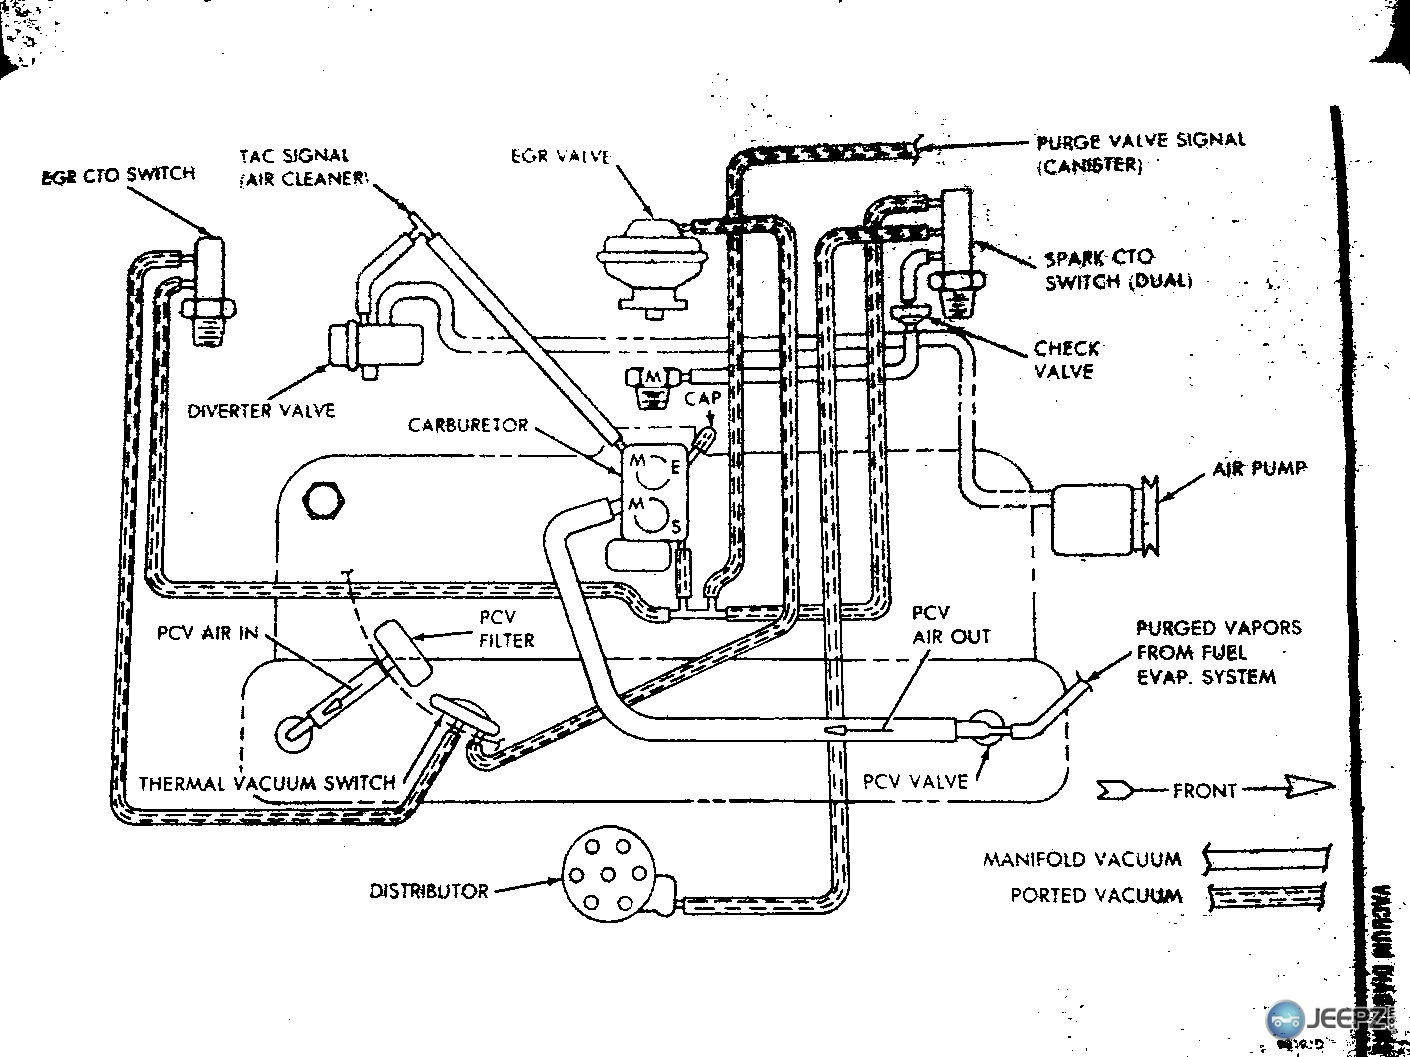 Jeep Cj7 Engine Diagram - Wiring Diagram General Jeep Cj Engine Wiring Diagram on